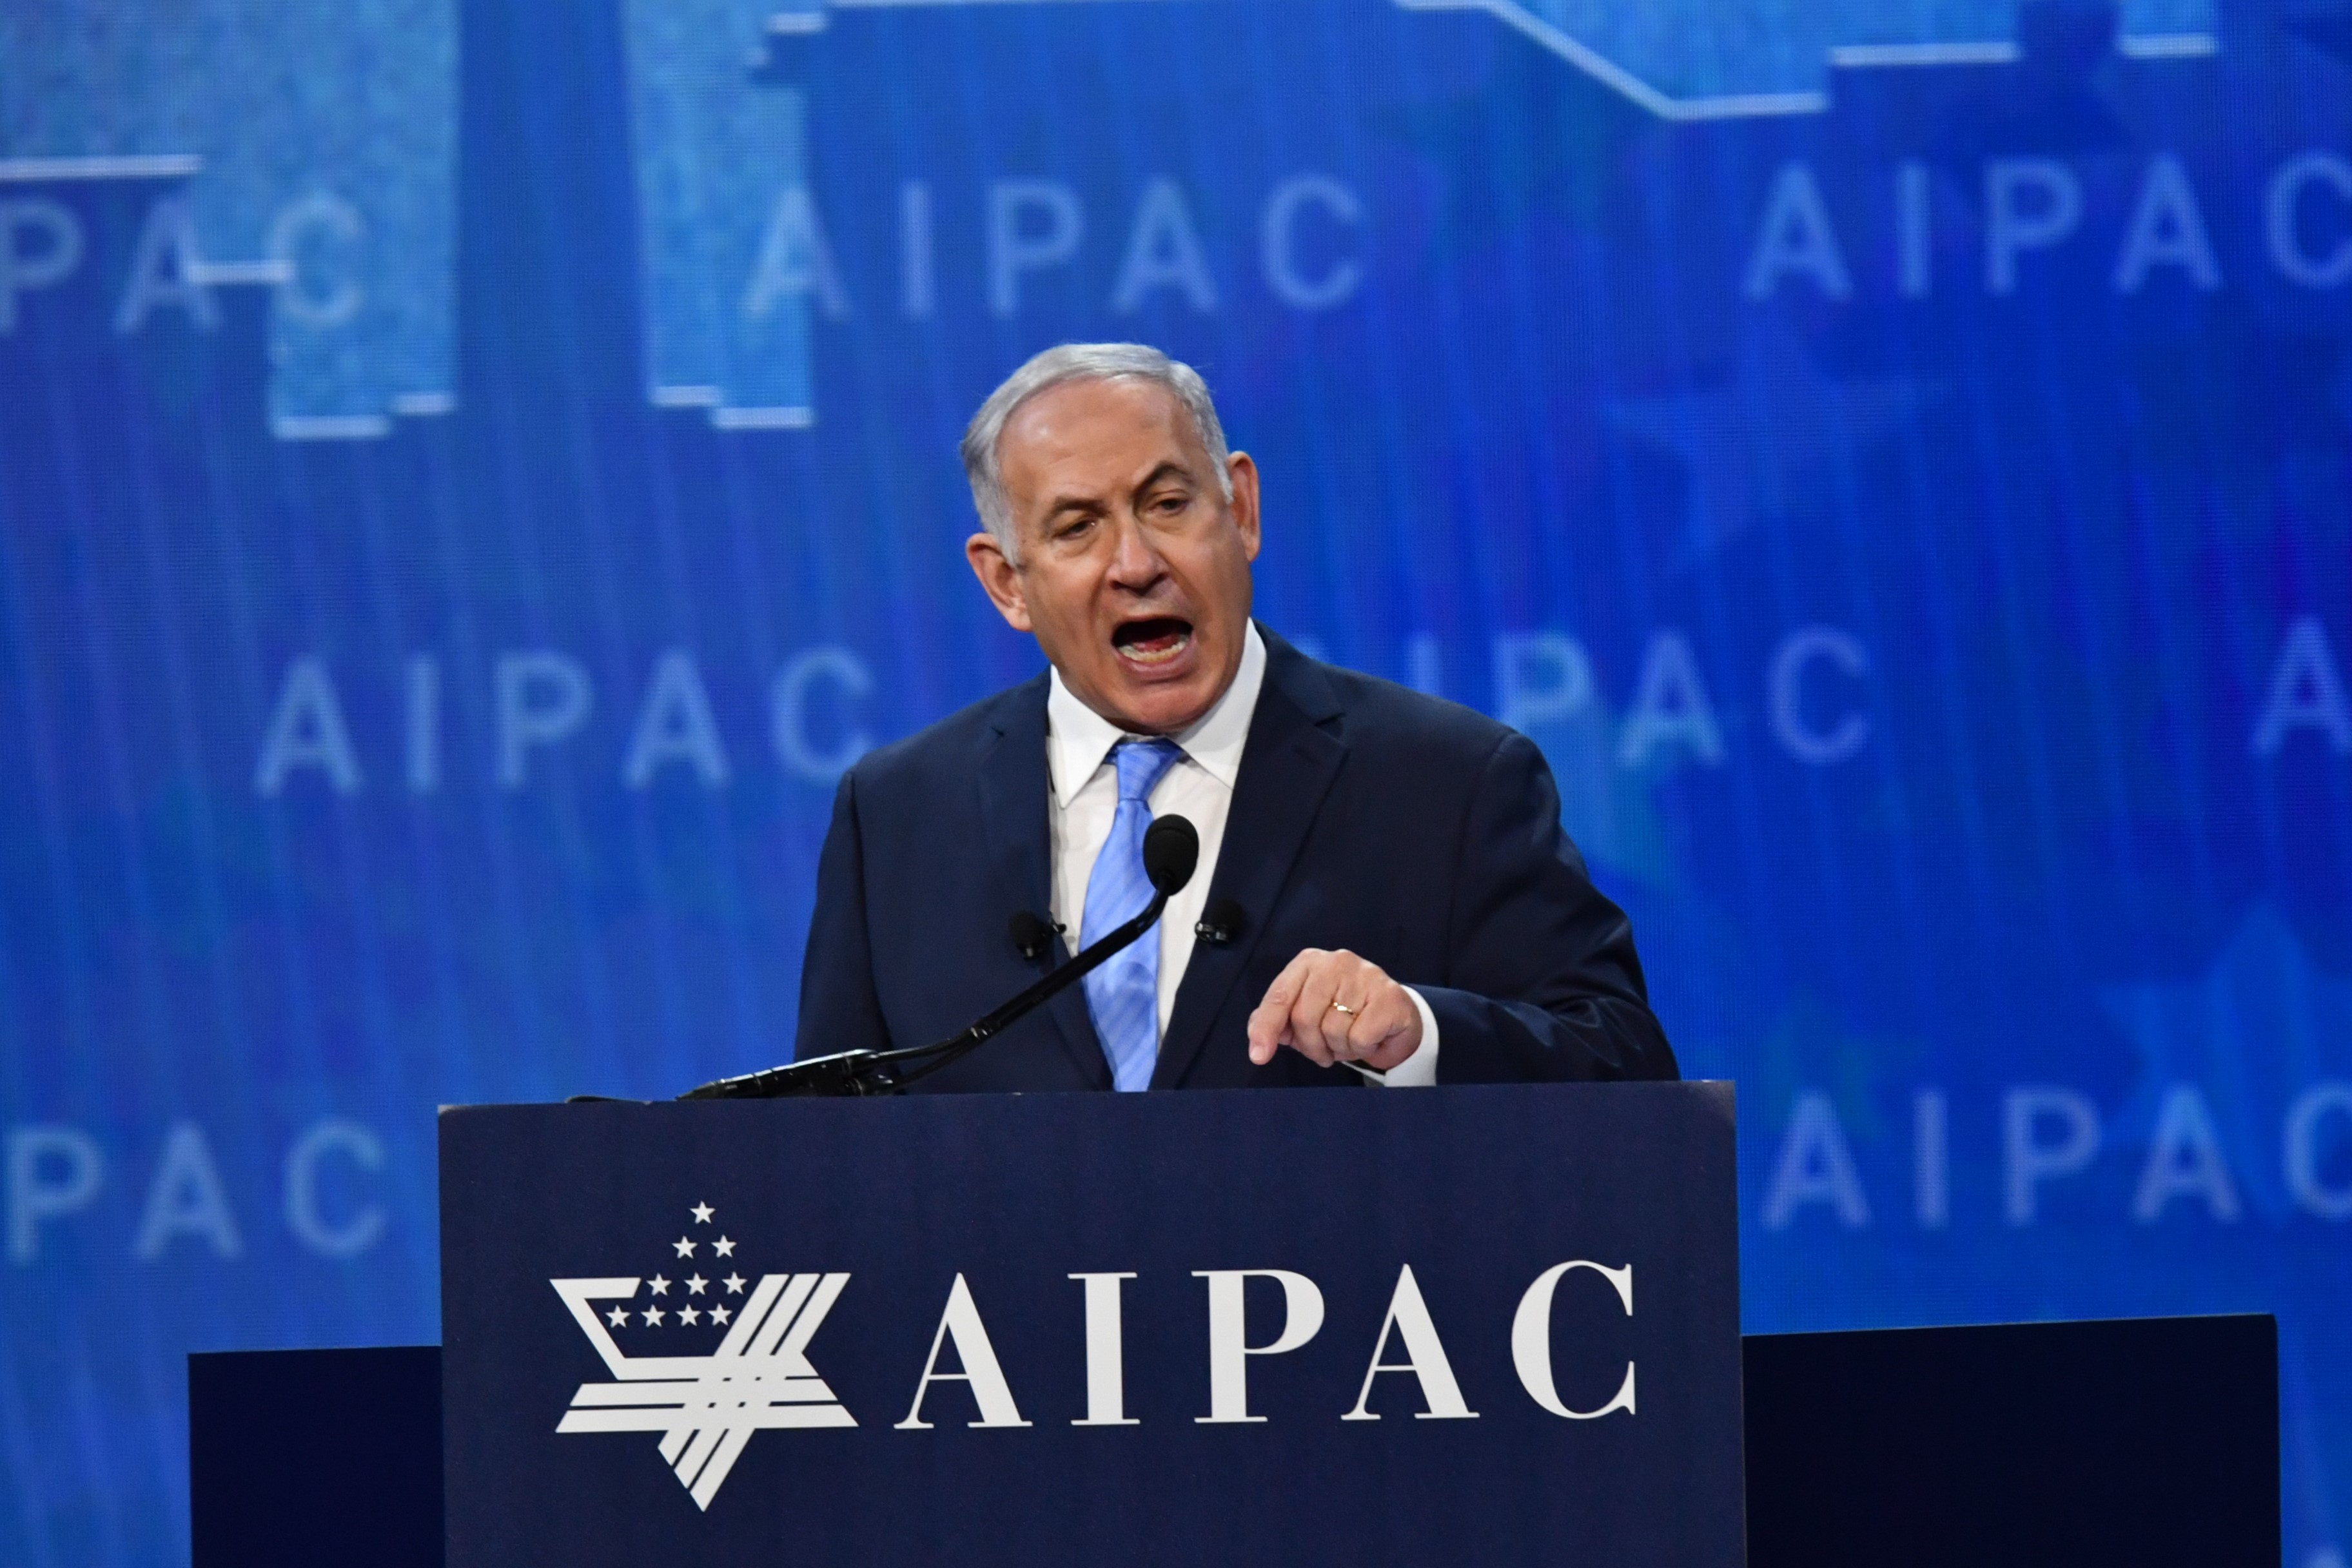 Israeli Prime Minister Benjamin Netanyahu speaks during AIPAC policy conference in Washington, DC, on 6 March 2018 (AFP)